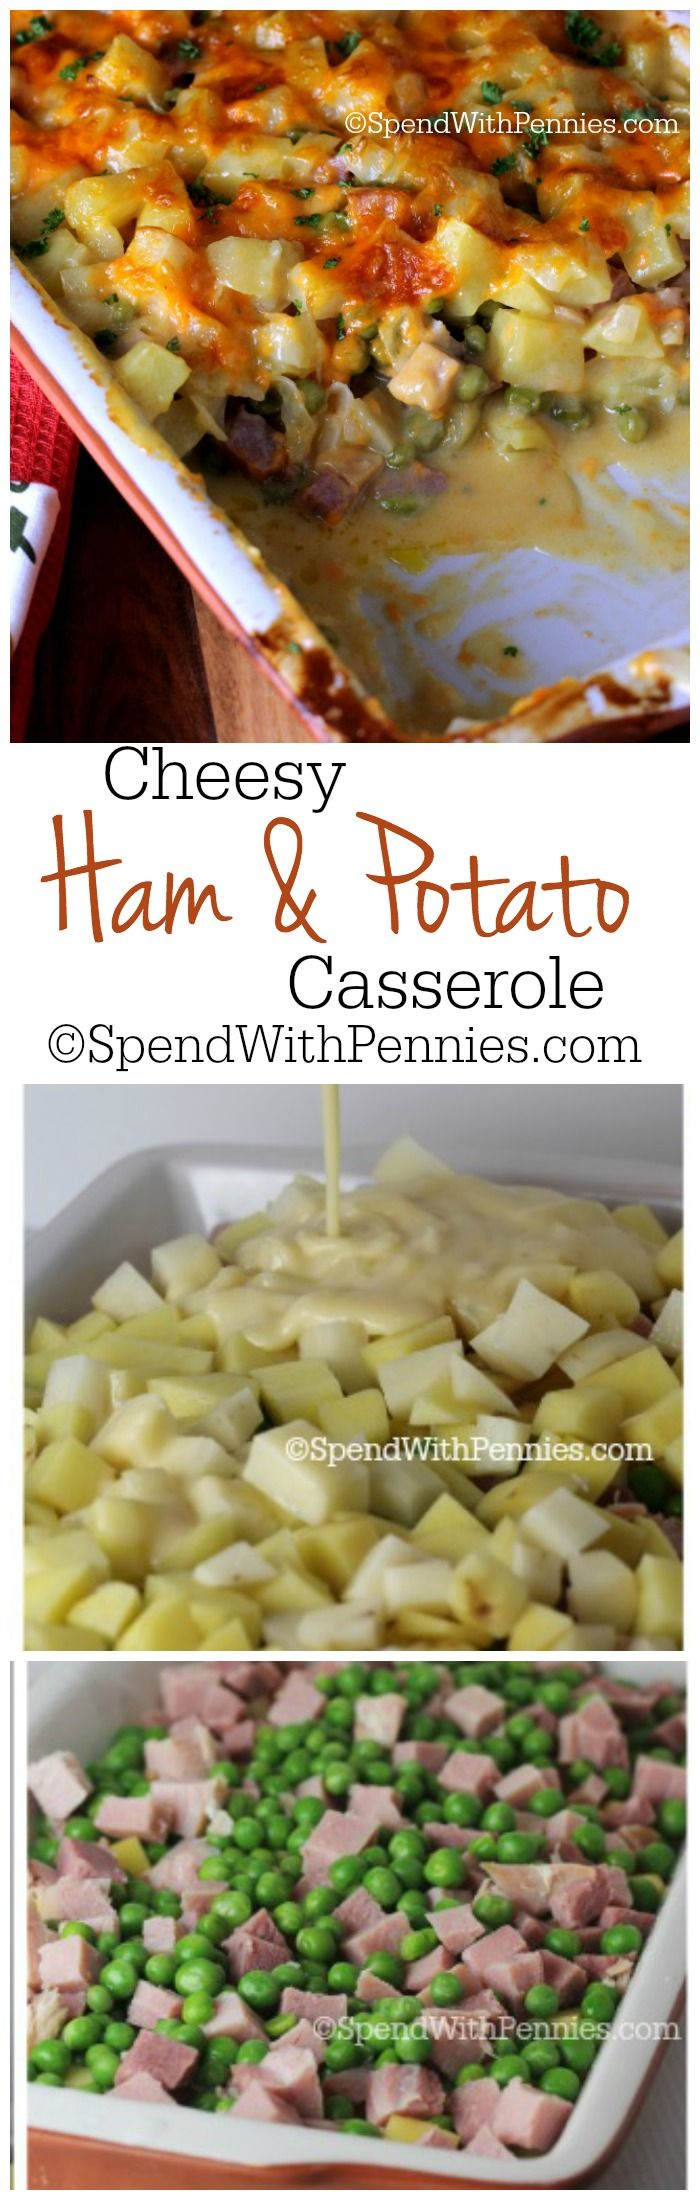 Delicious layers of potatoes, ham & peas smothered in a creamy homemade cheese sauce!! ♥